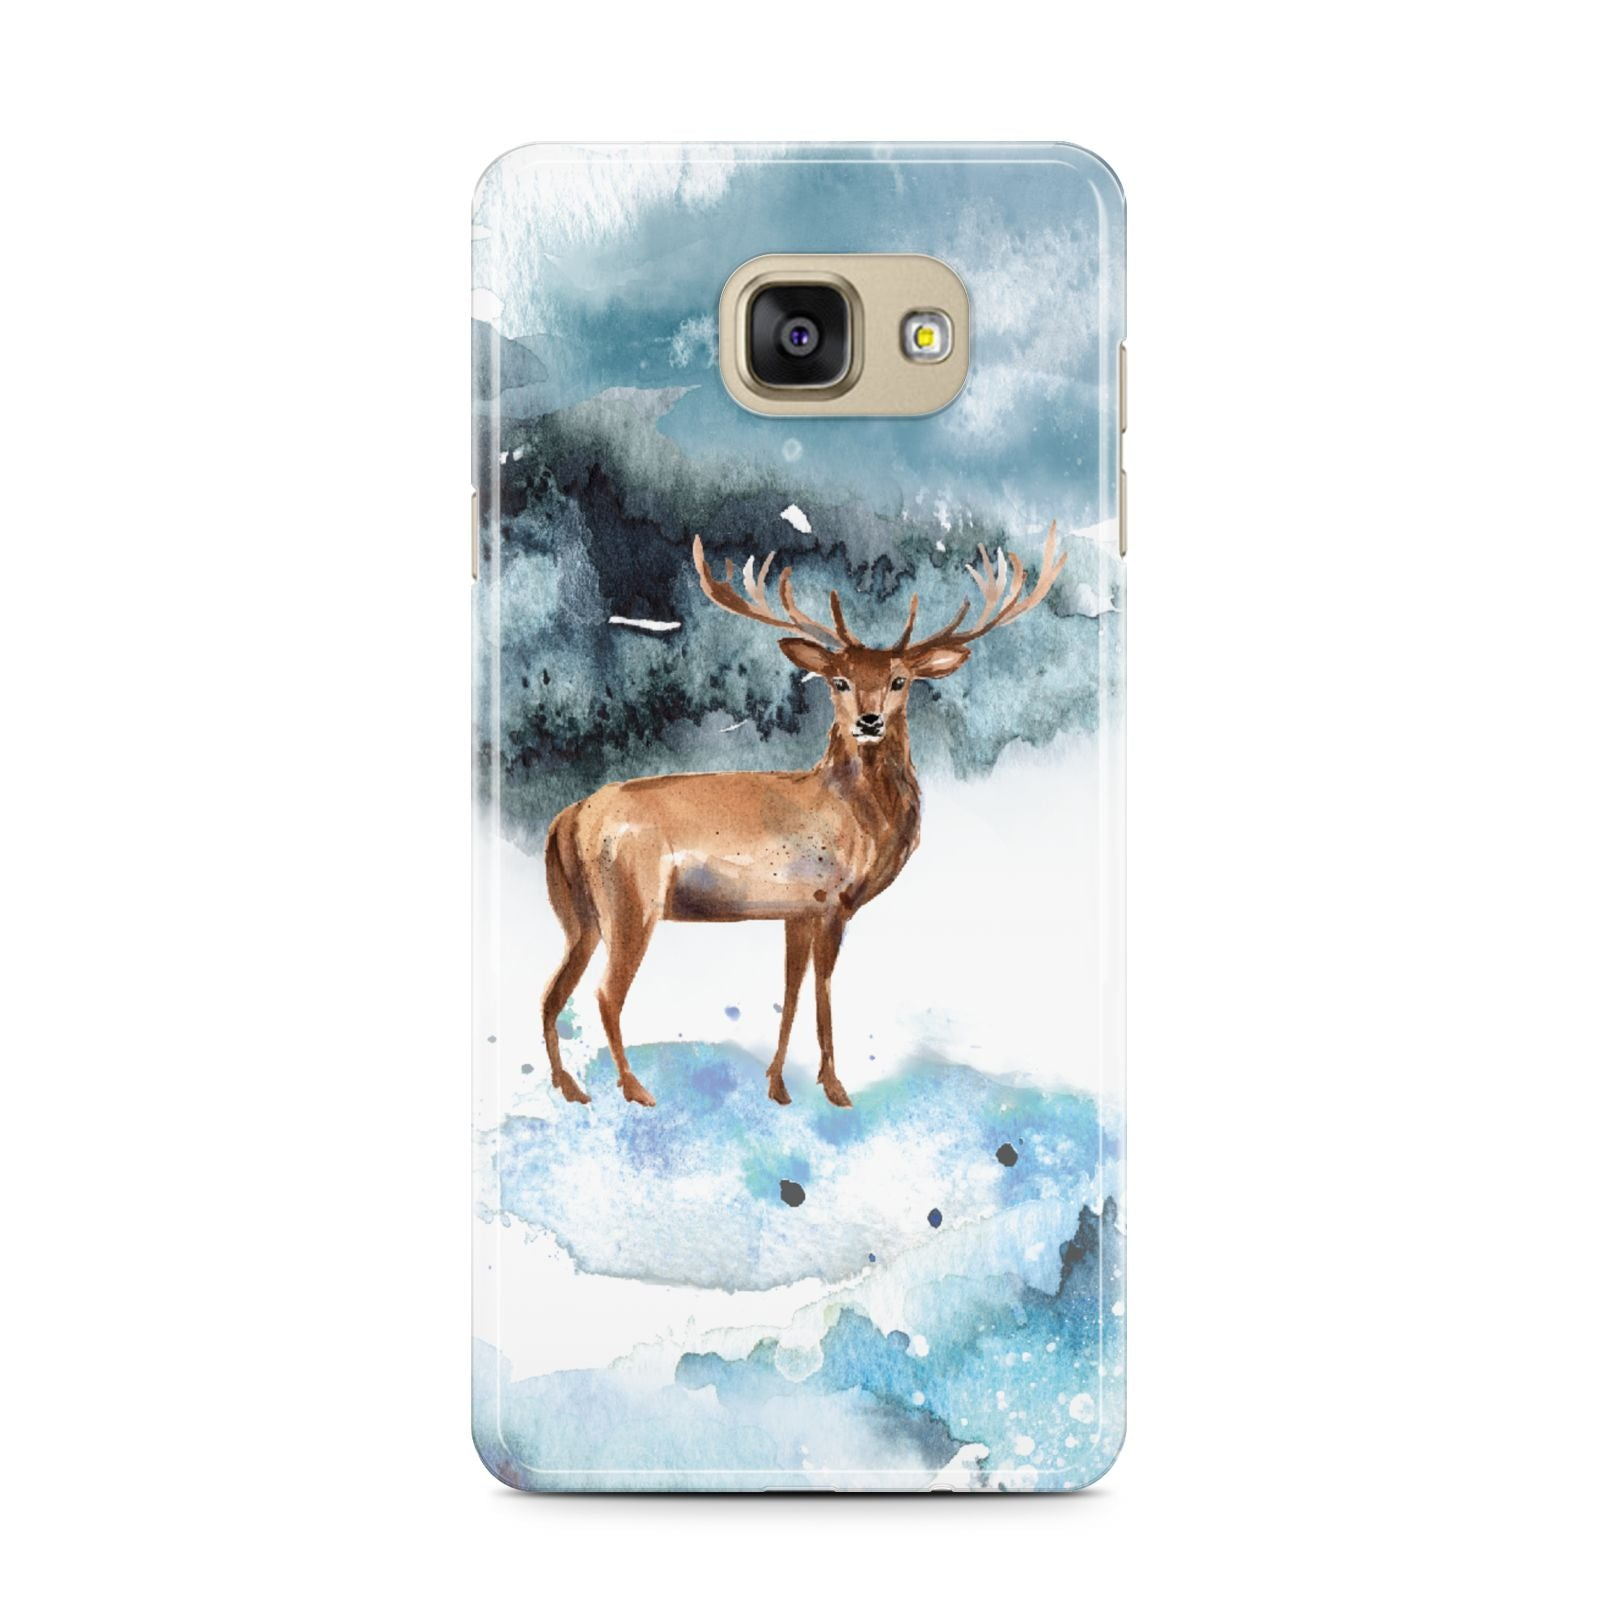 Christmas Winter Stag Samsung Galaxy A7 2016 Case on gold phone